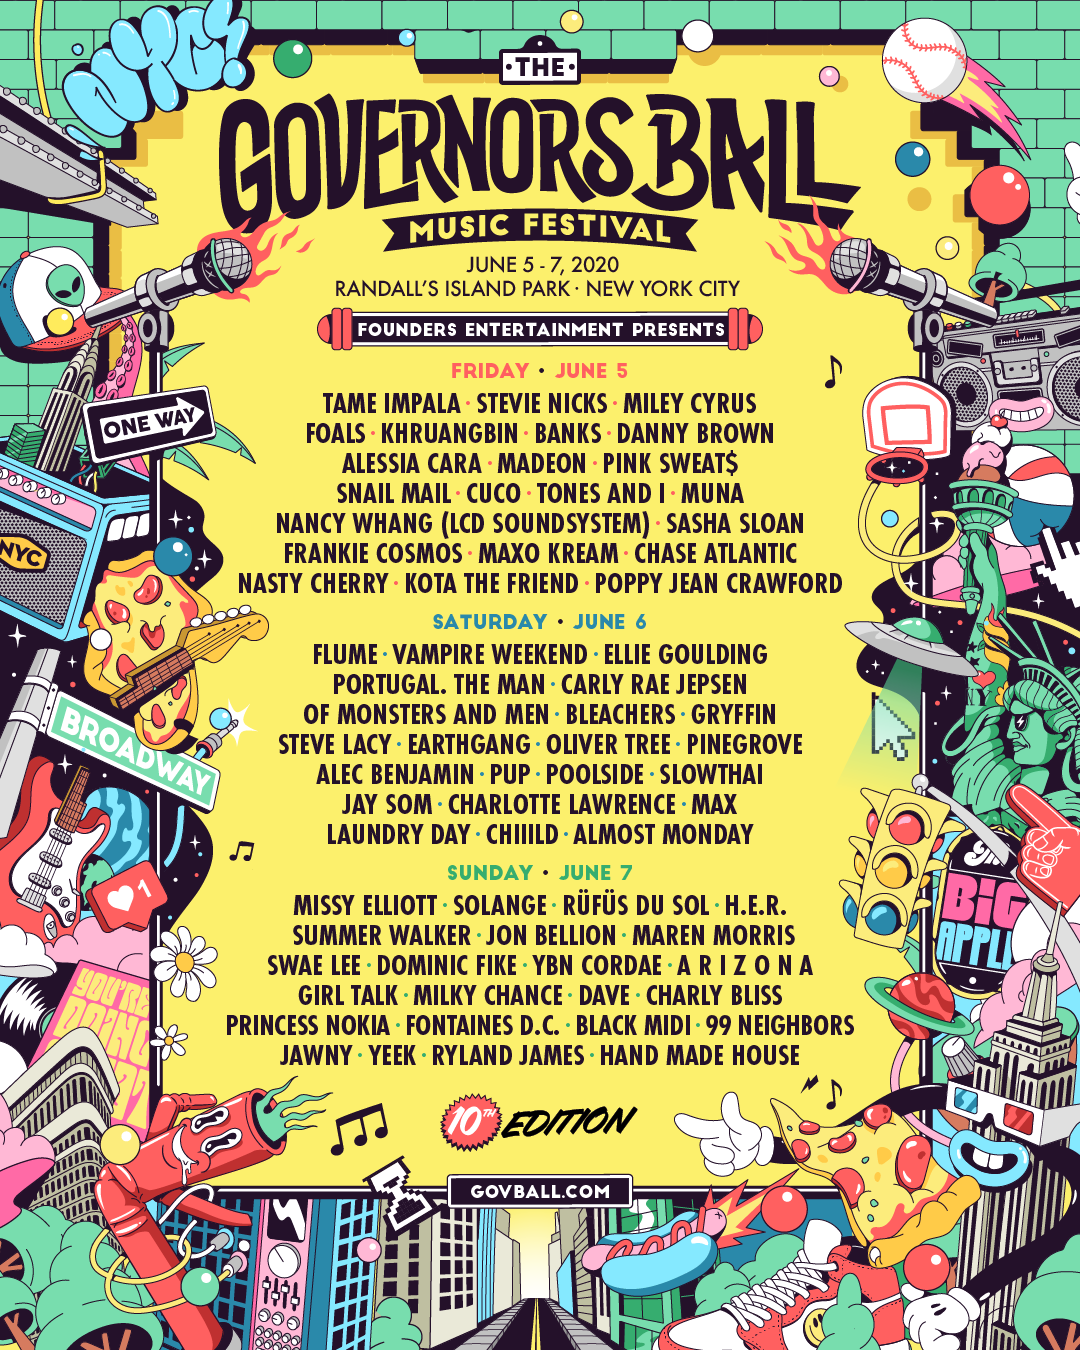 Founders Entertainment Presents New York City's Governors Ball Music Festival: 10th edition